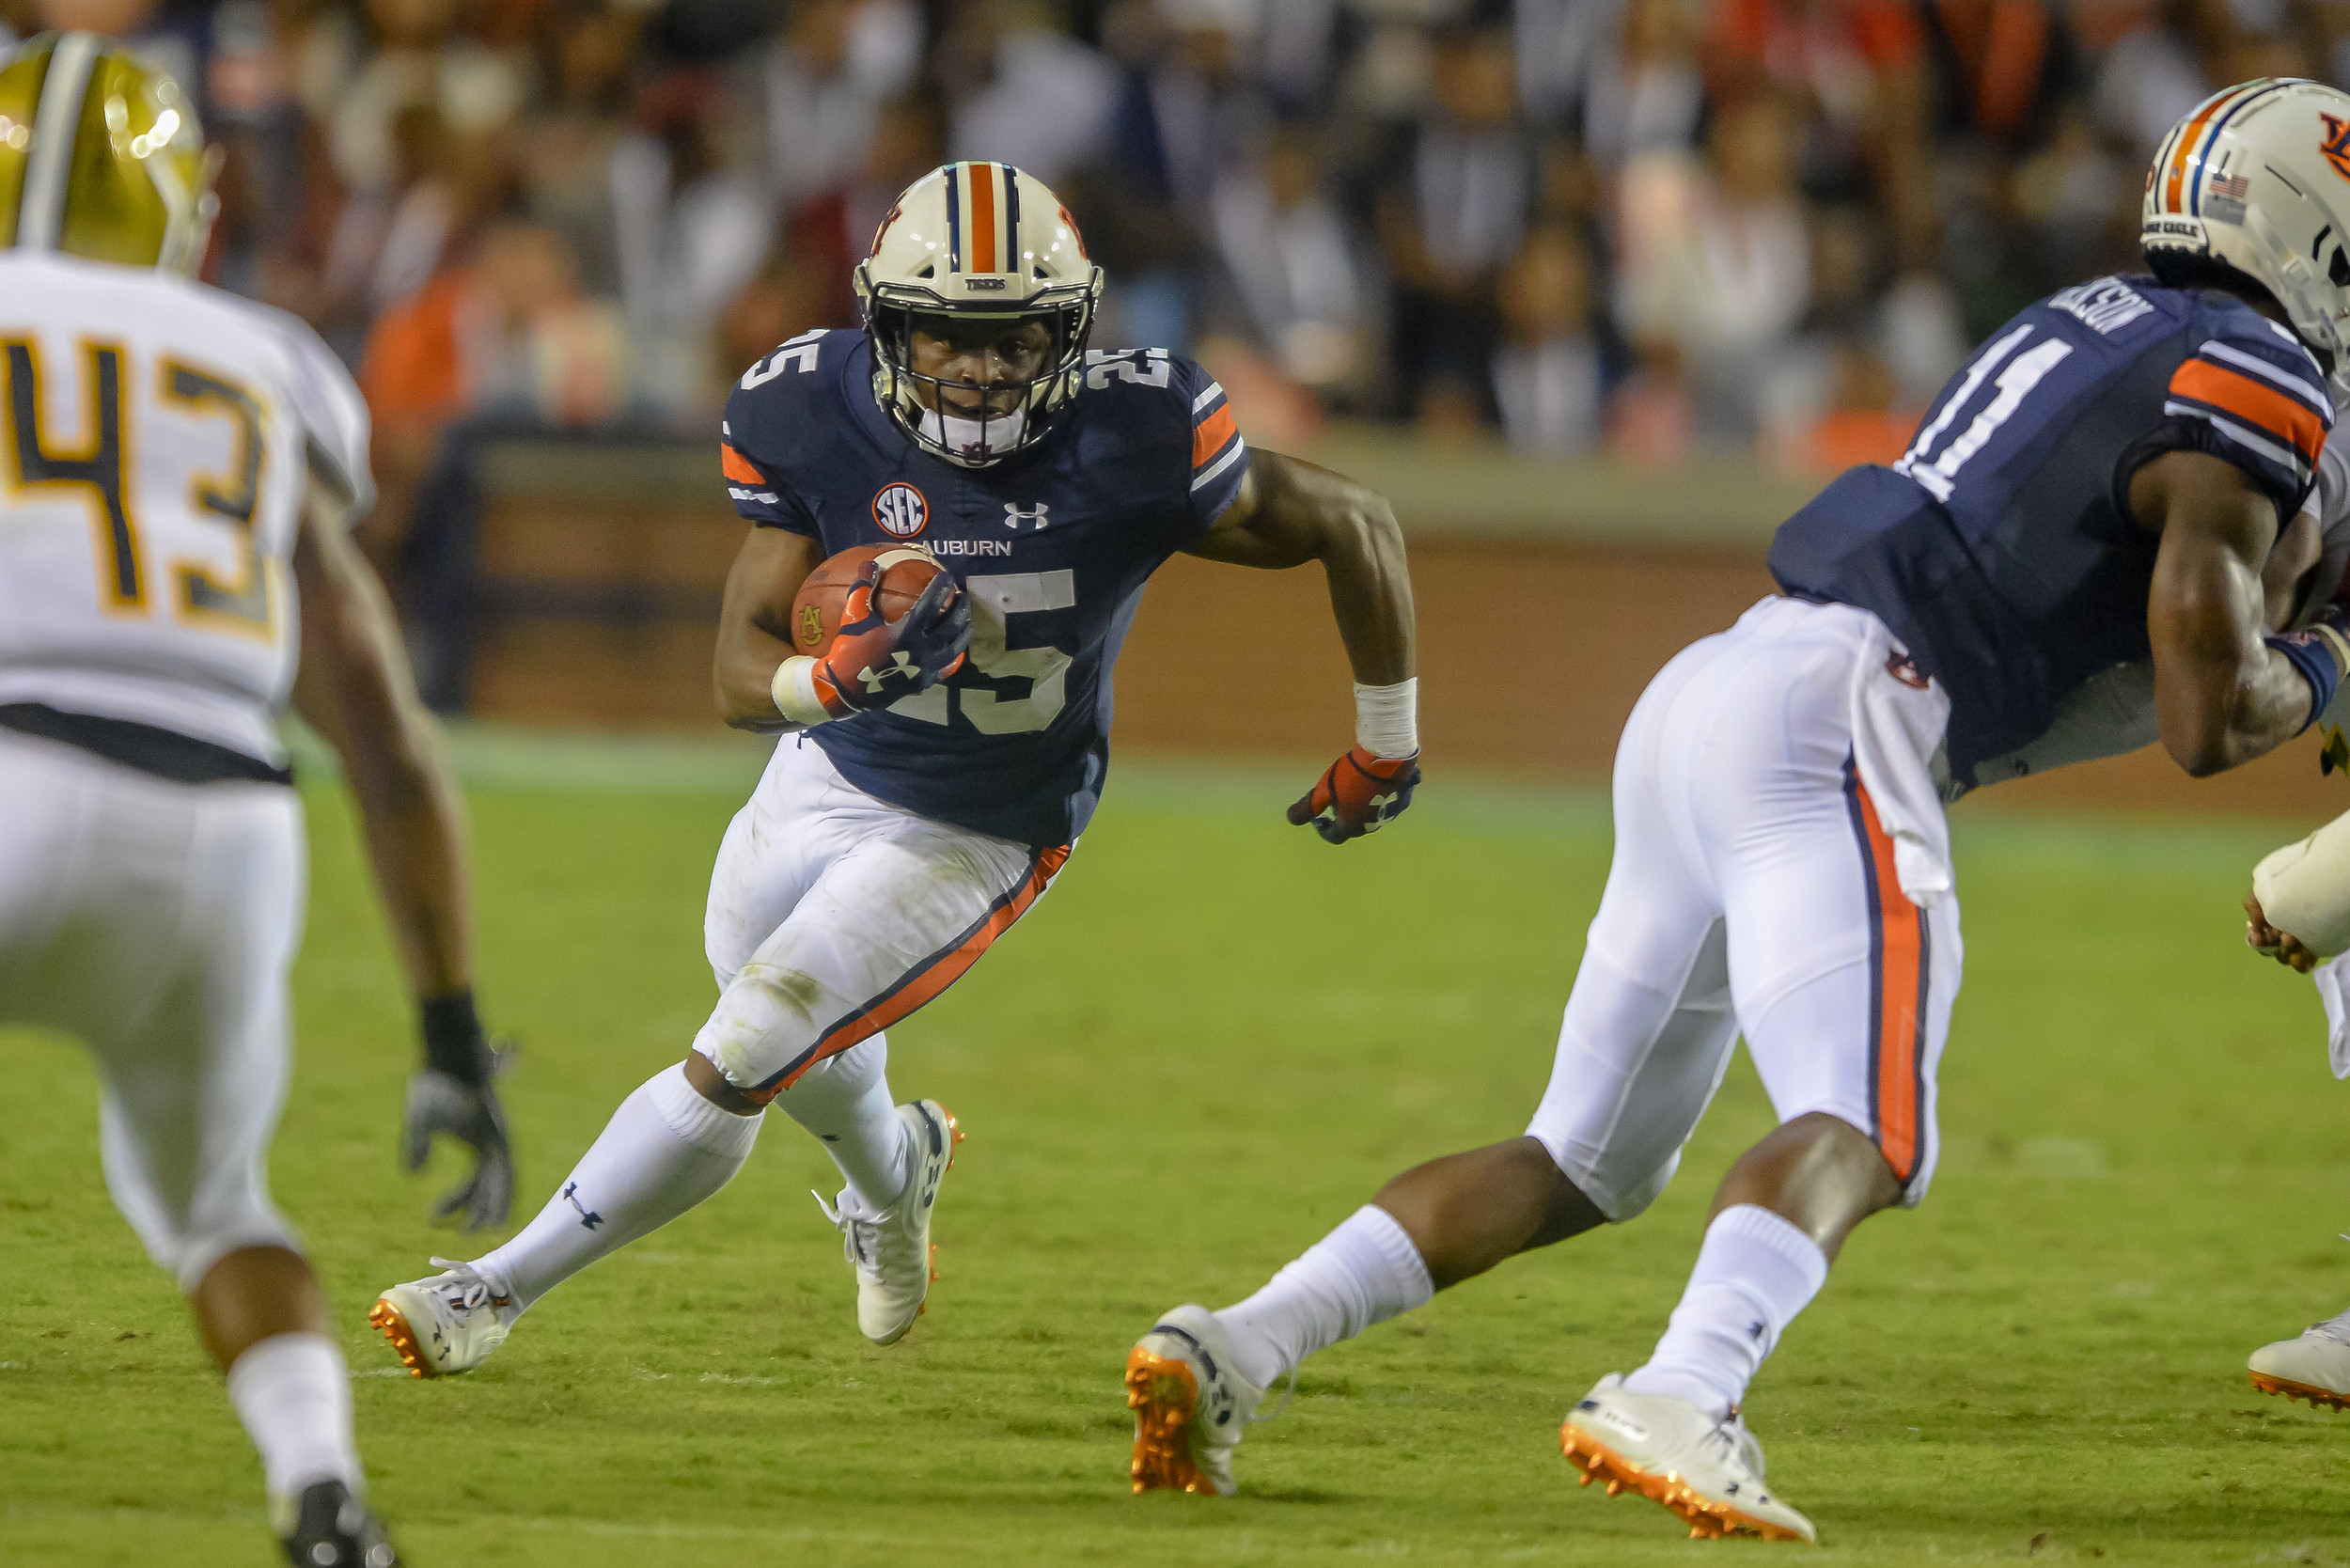 Auburn Tigers running back Shaun Shivers (25) runs behind the block of wide receiver Shedrick Jackson (11) during the second half of Saturday's game, at Jordan Hare Stadium in Auburn Atlanta. (Contributed by Jeff Johnsey)